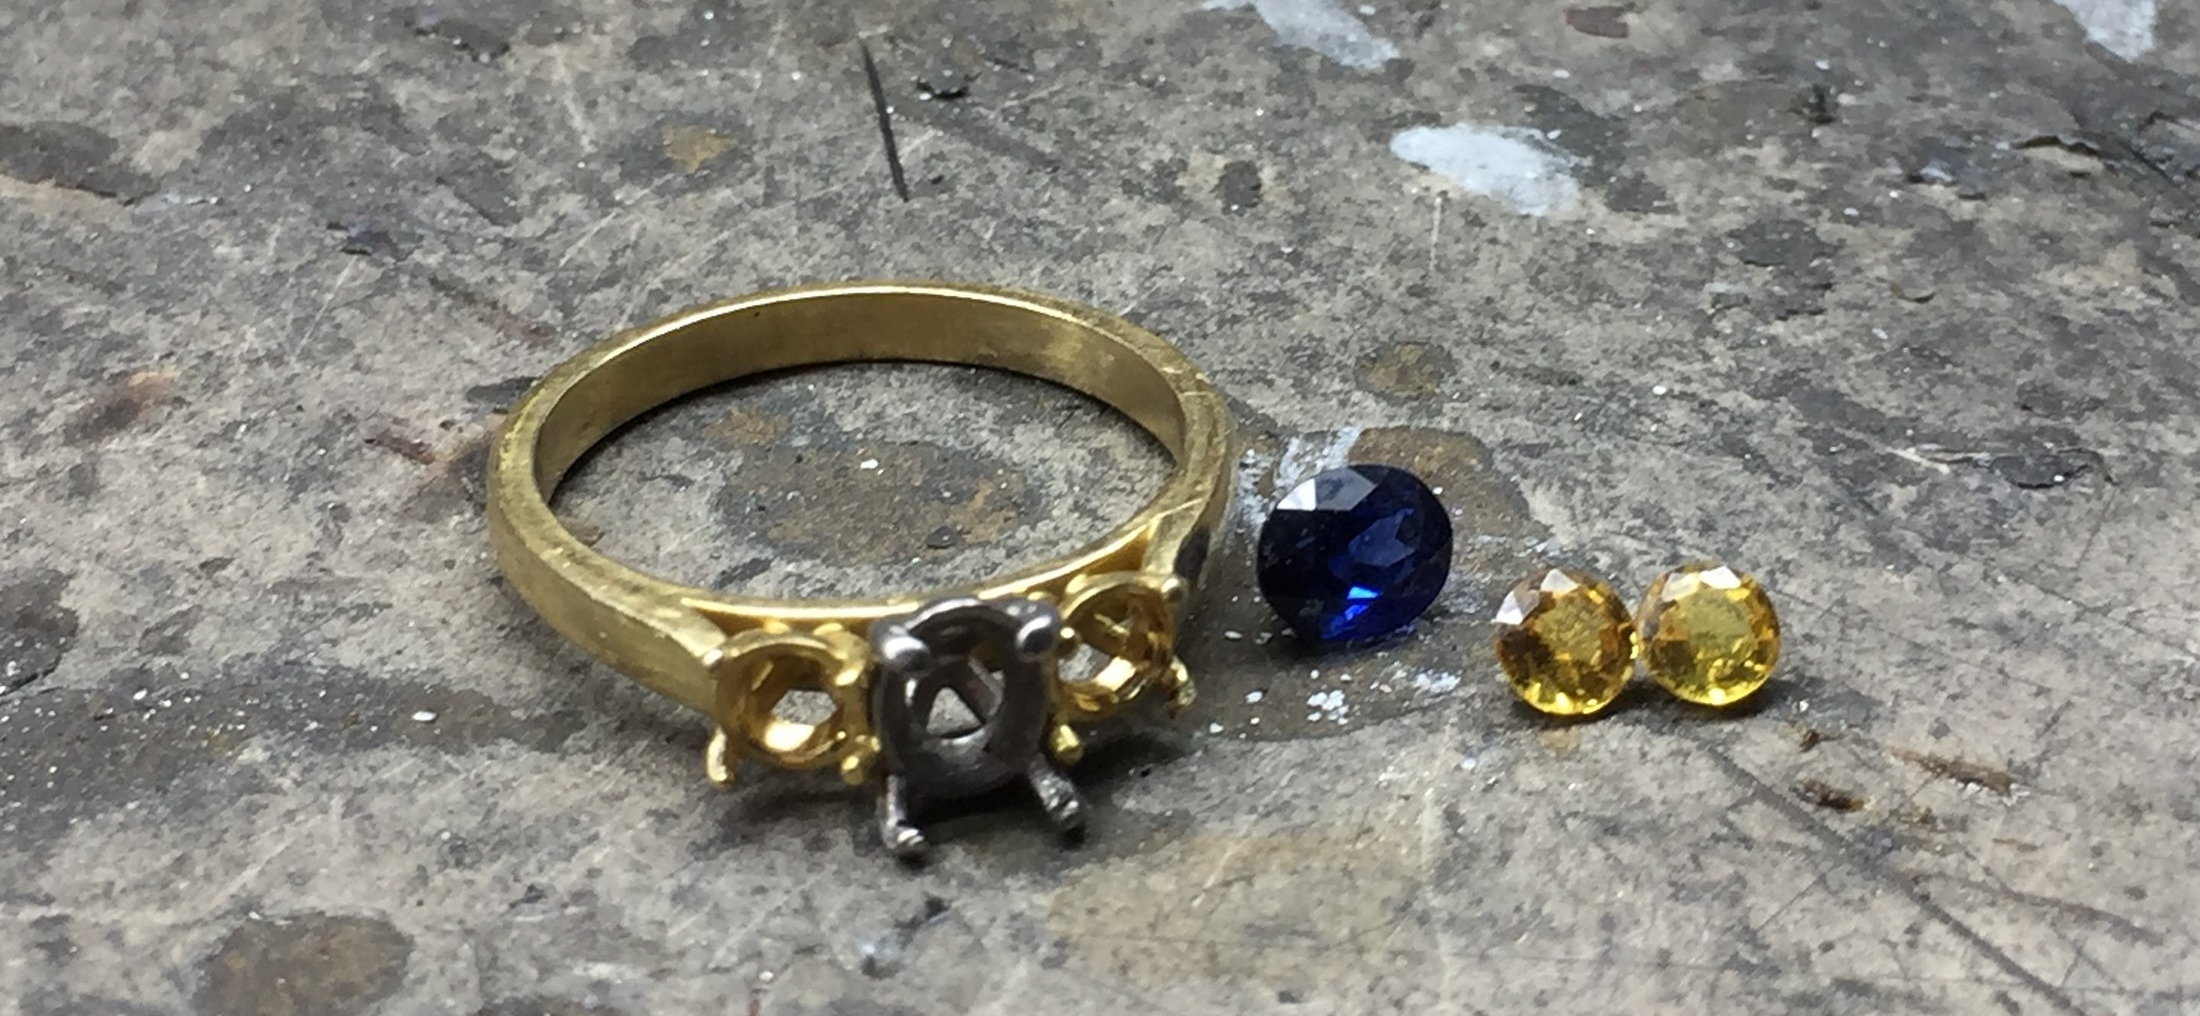 The ring unset and gems ready for inspection.